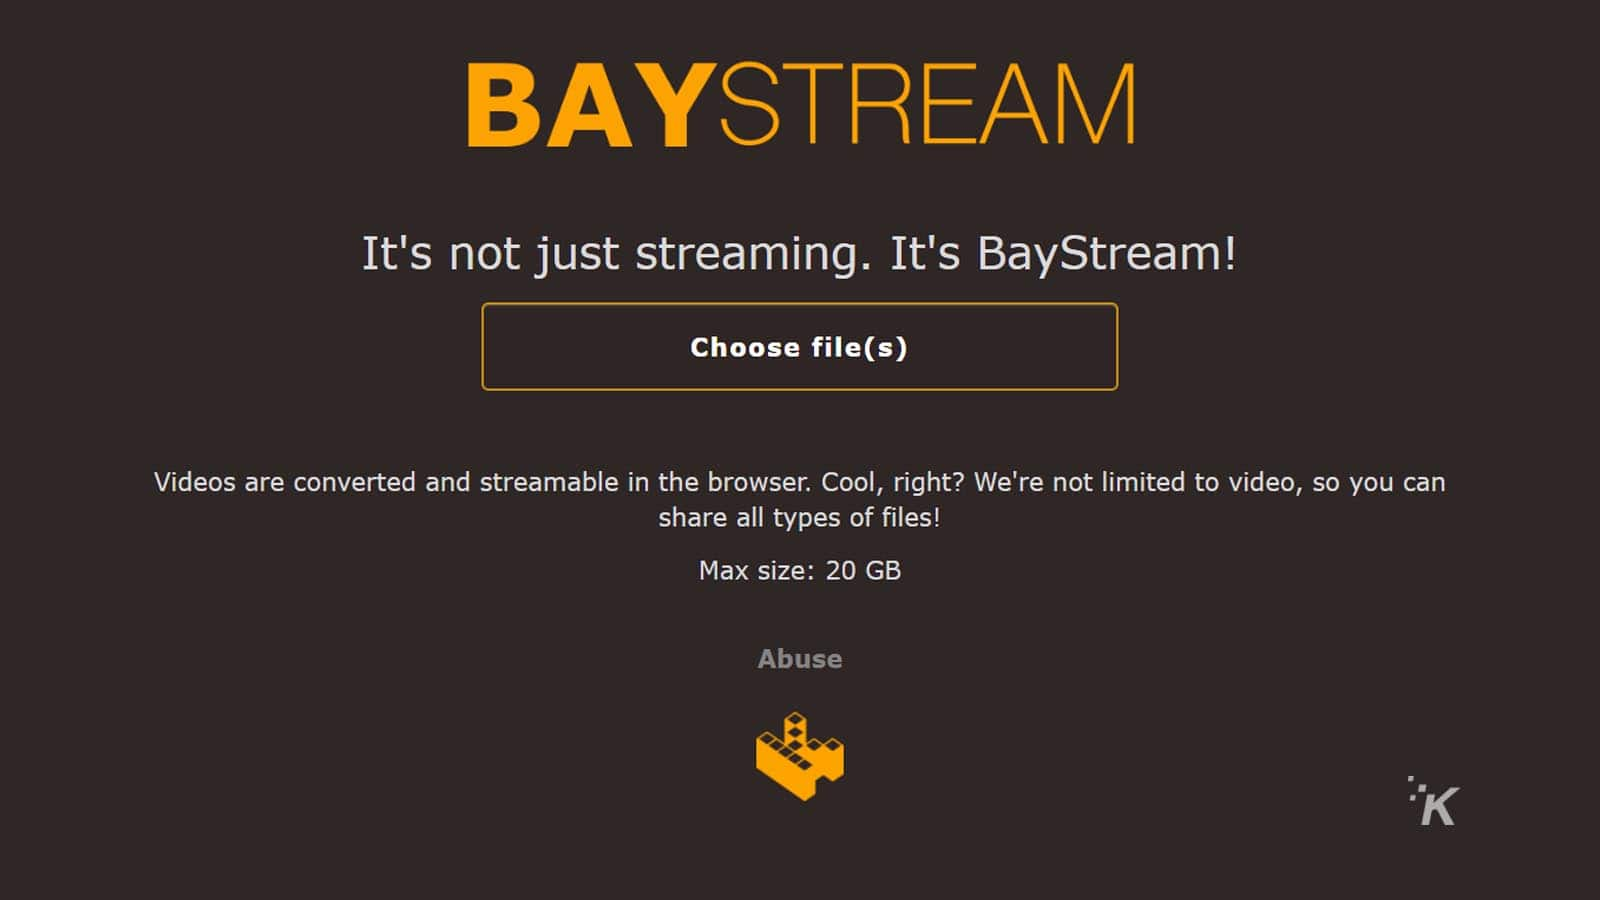 baystreaming from the pirate bay